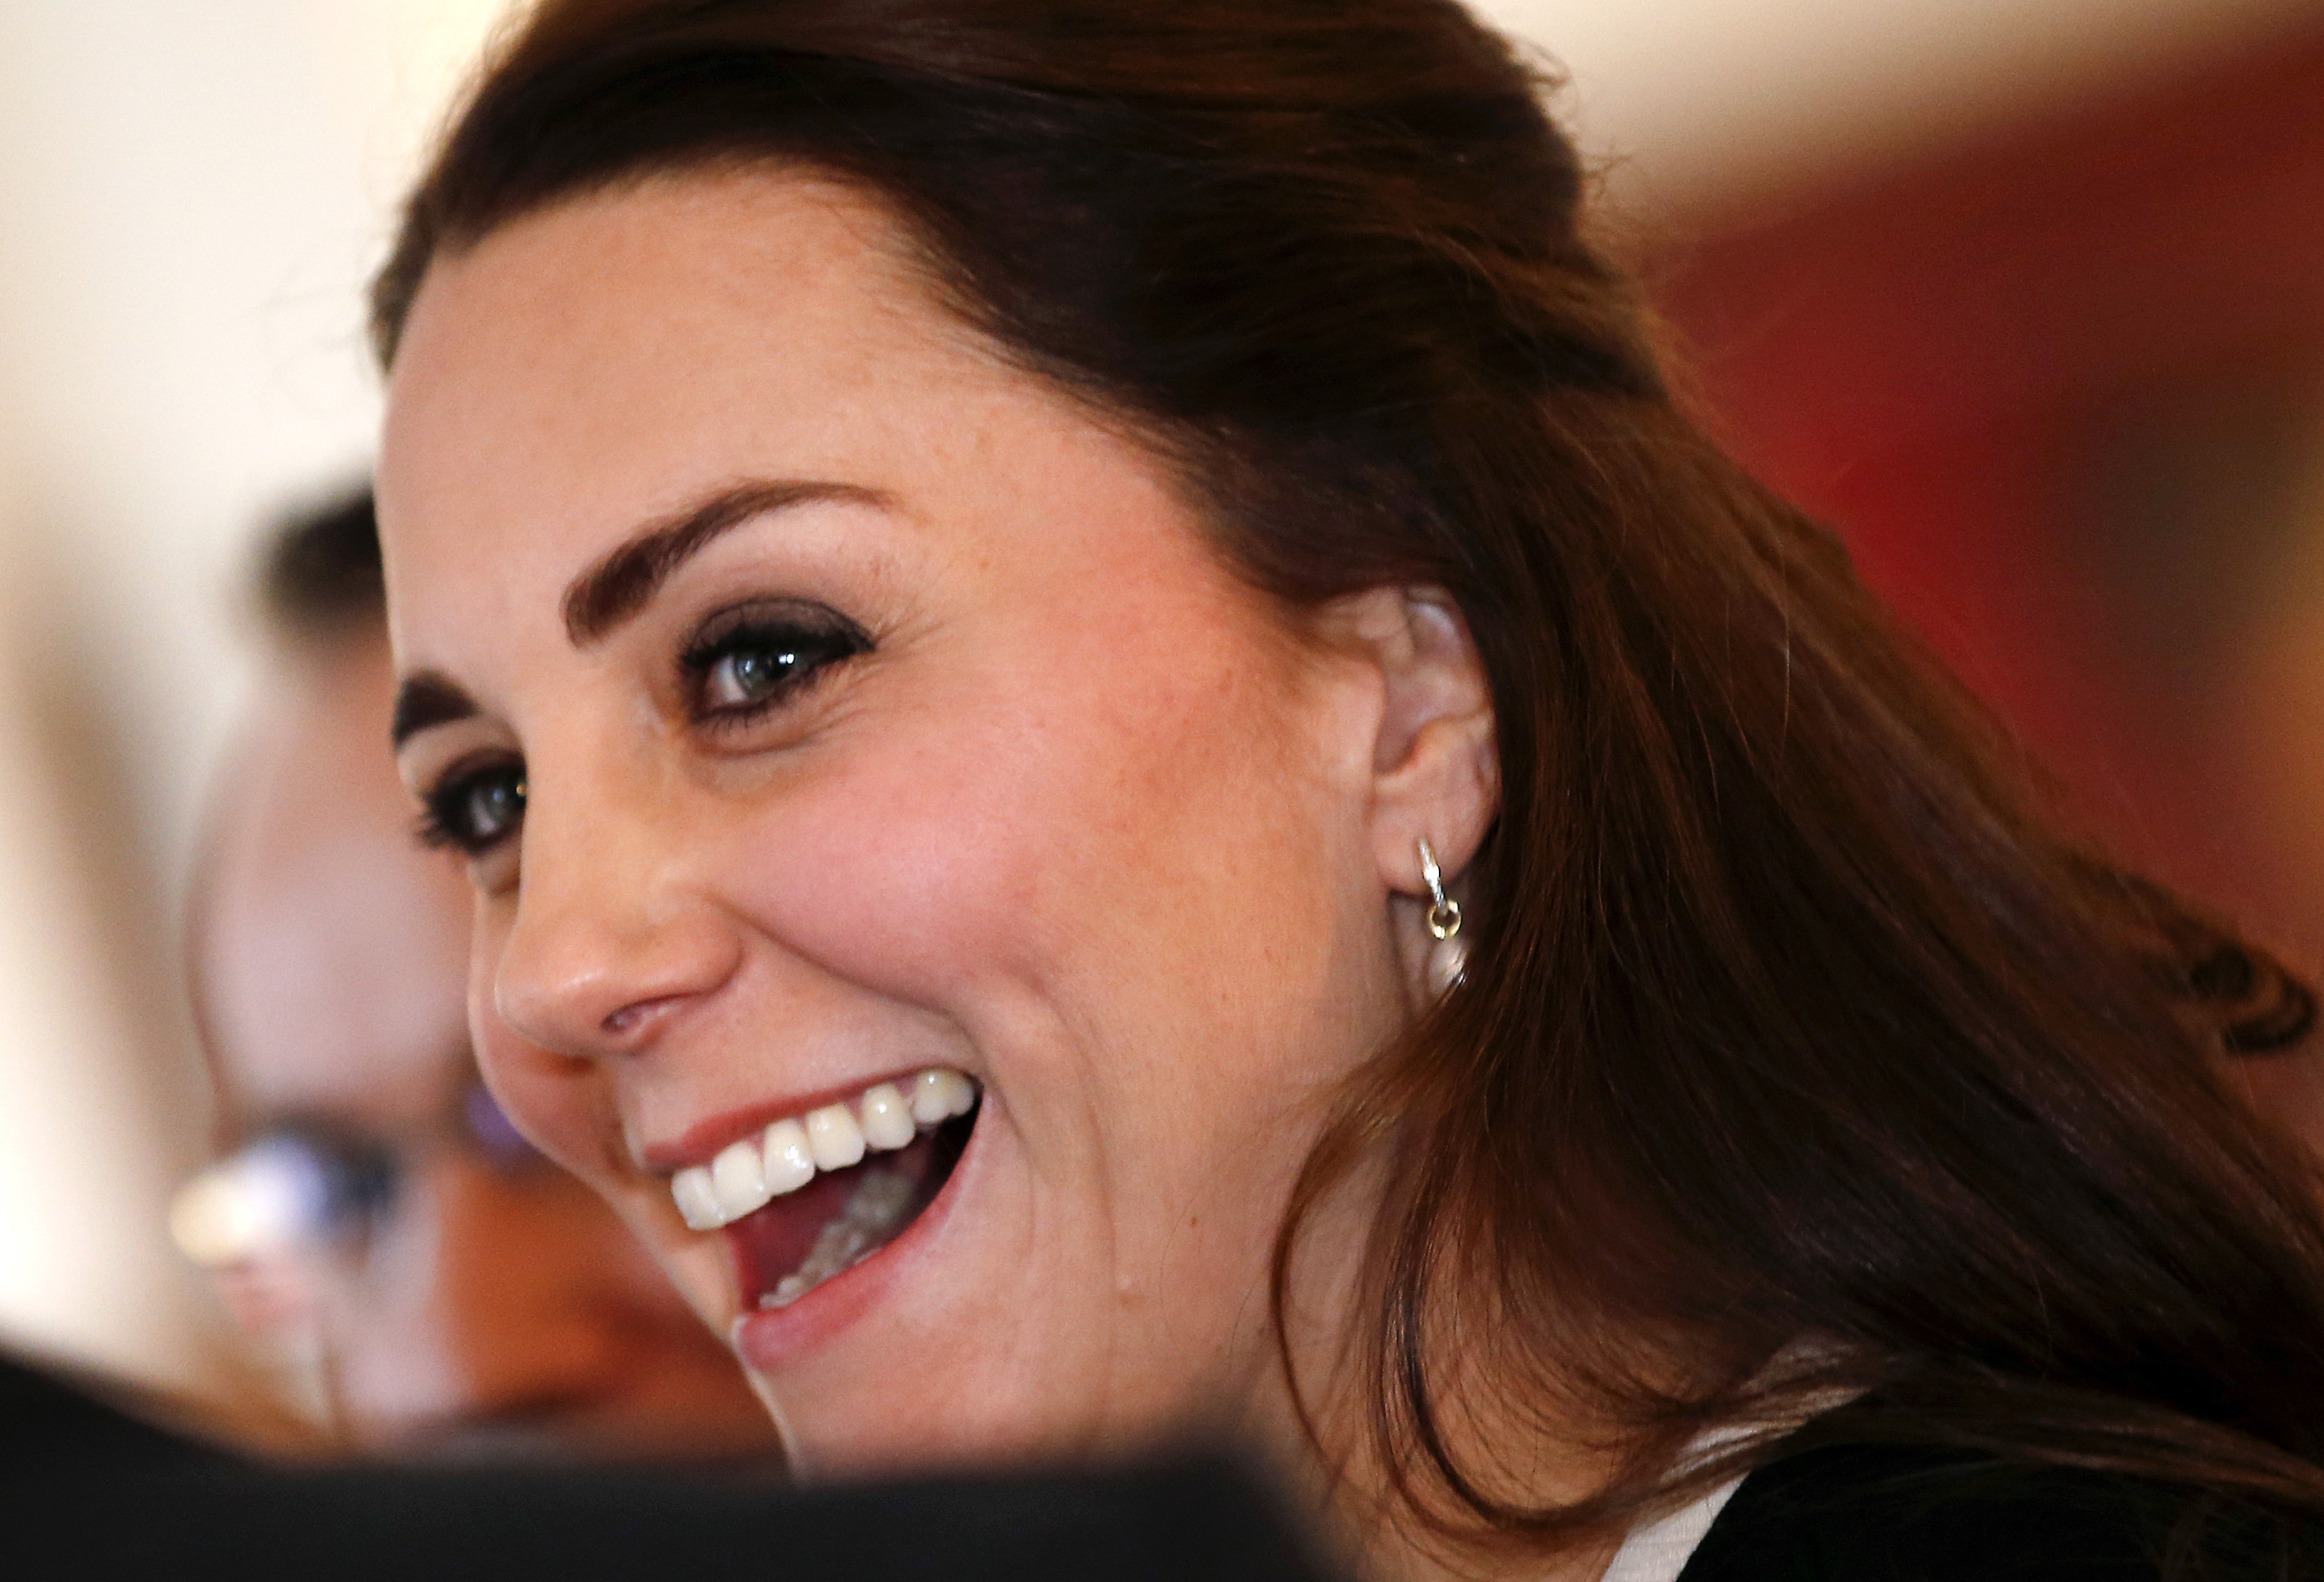 Prince William calls Kate's hair a 'nightmare'